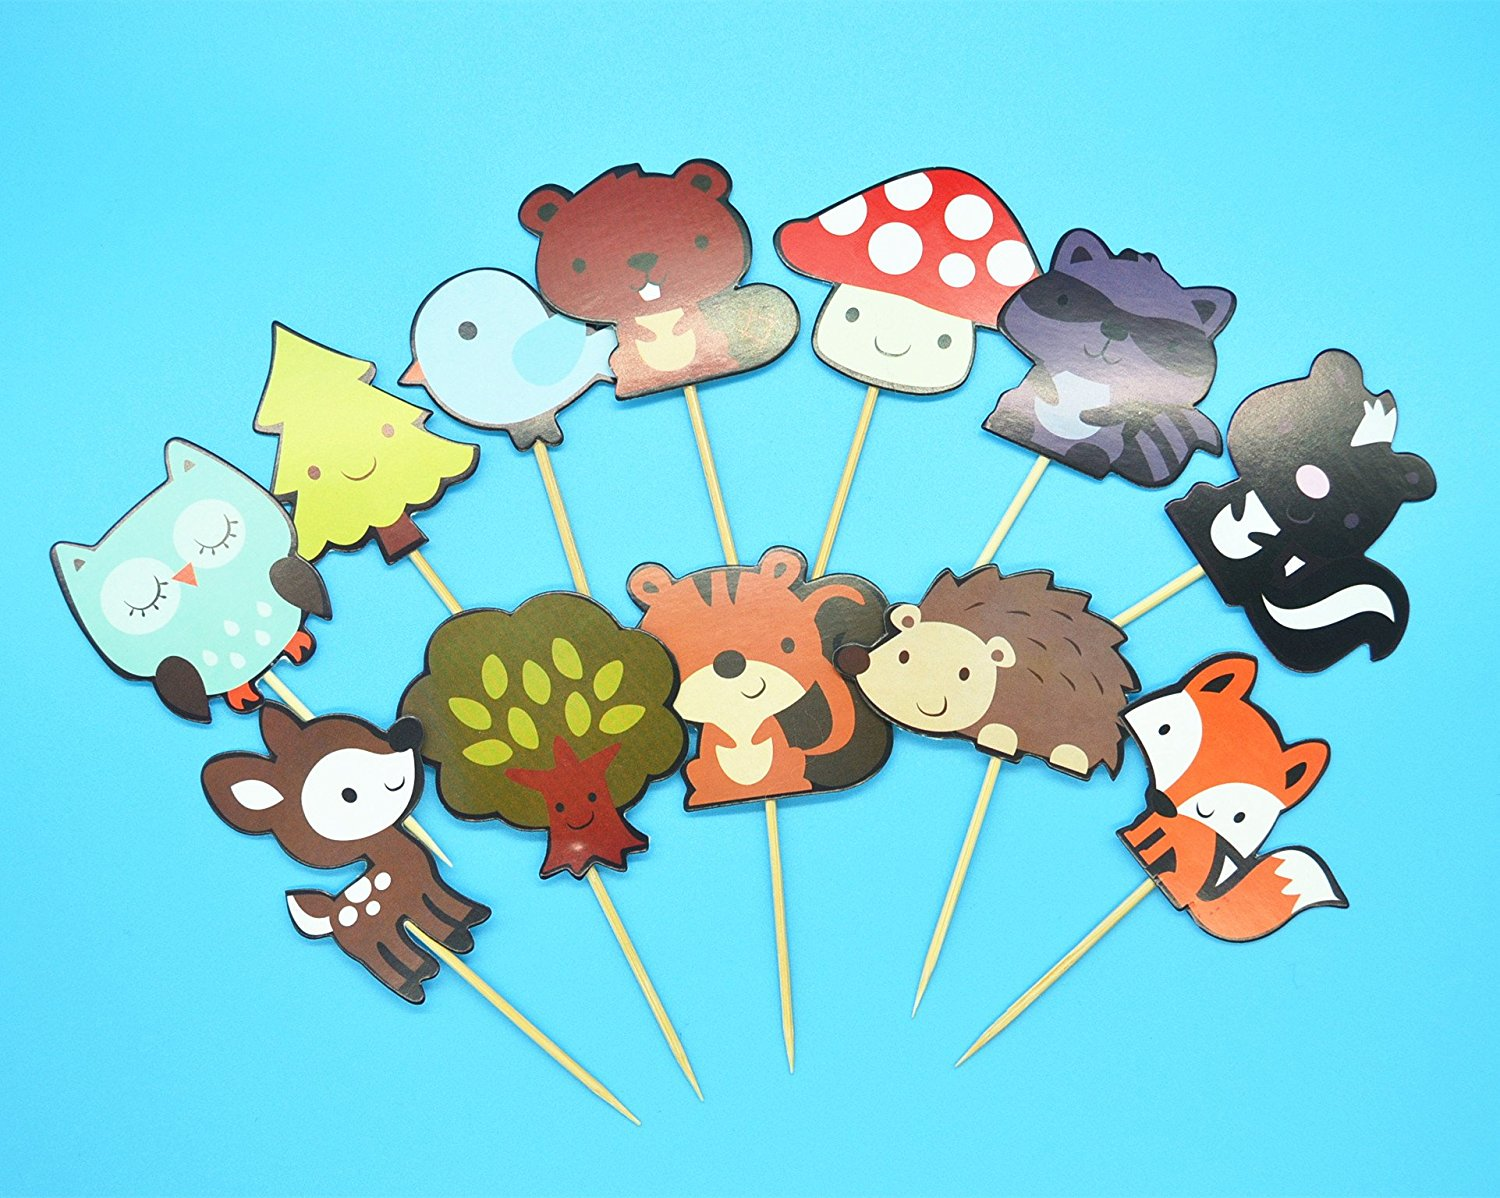 Cute Woodland Creatures Theme Cupcake Toppers Picks, 24 Pieces/Pack Forest Animals Friends Cake Toppers, Kids Woodland Theme Birthday Party Baby Shower Cake Decoration